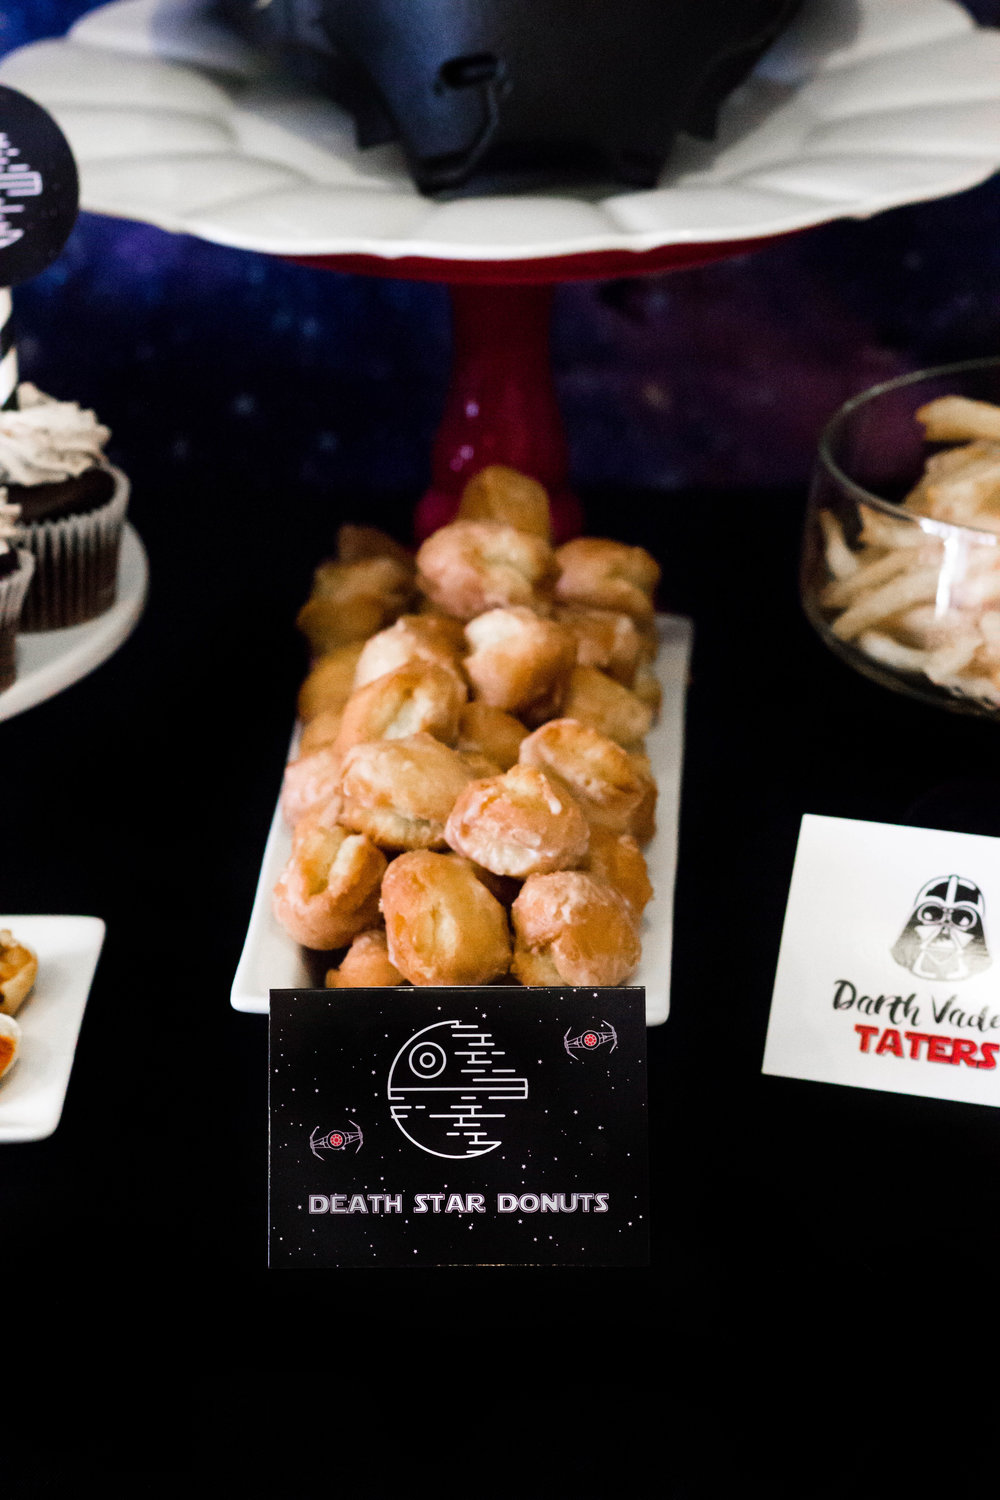 Death star donuts, star wars party food ideas from shopmkkm.com